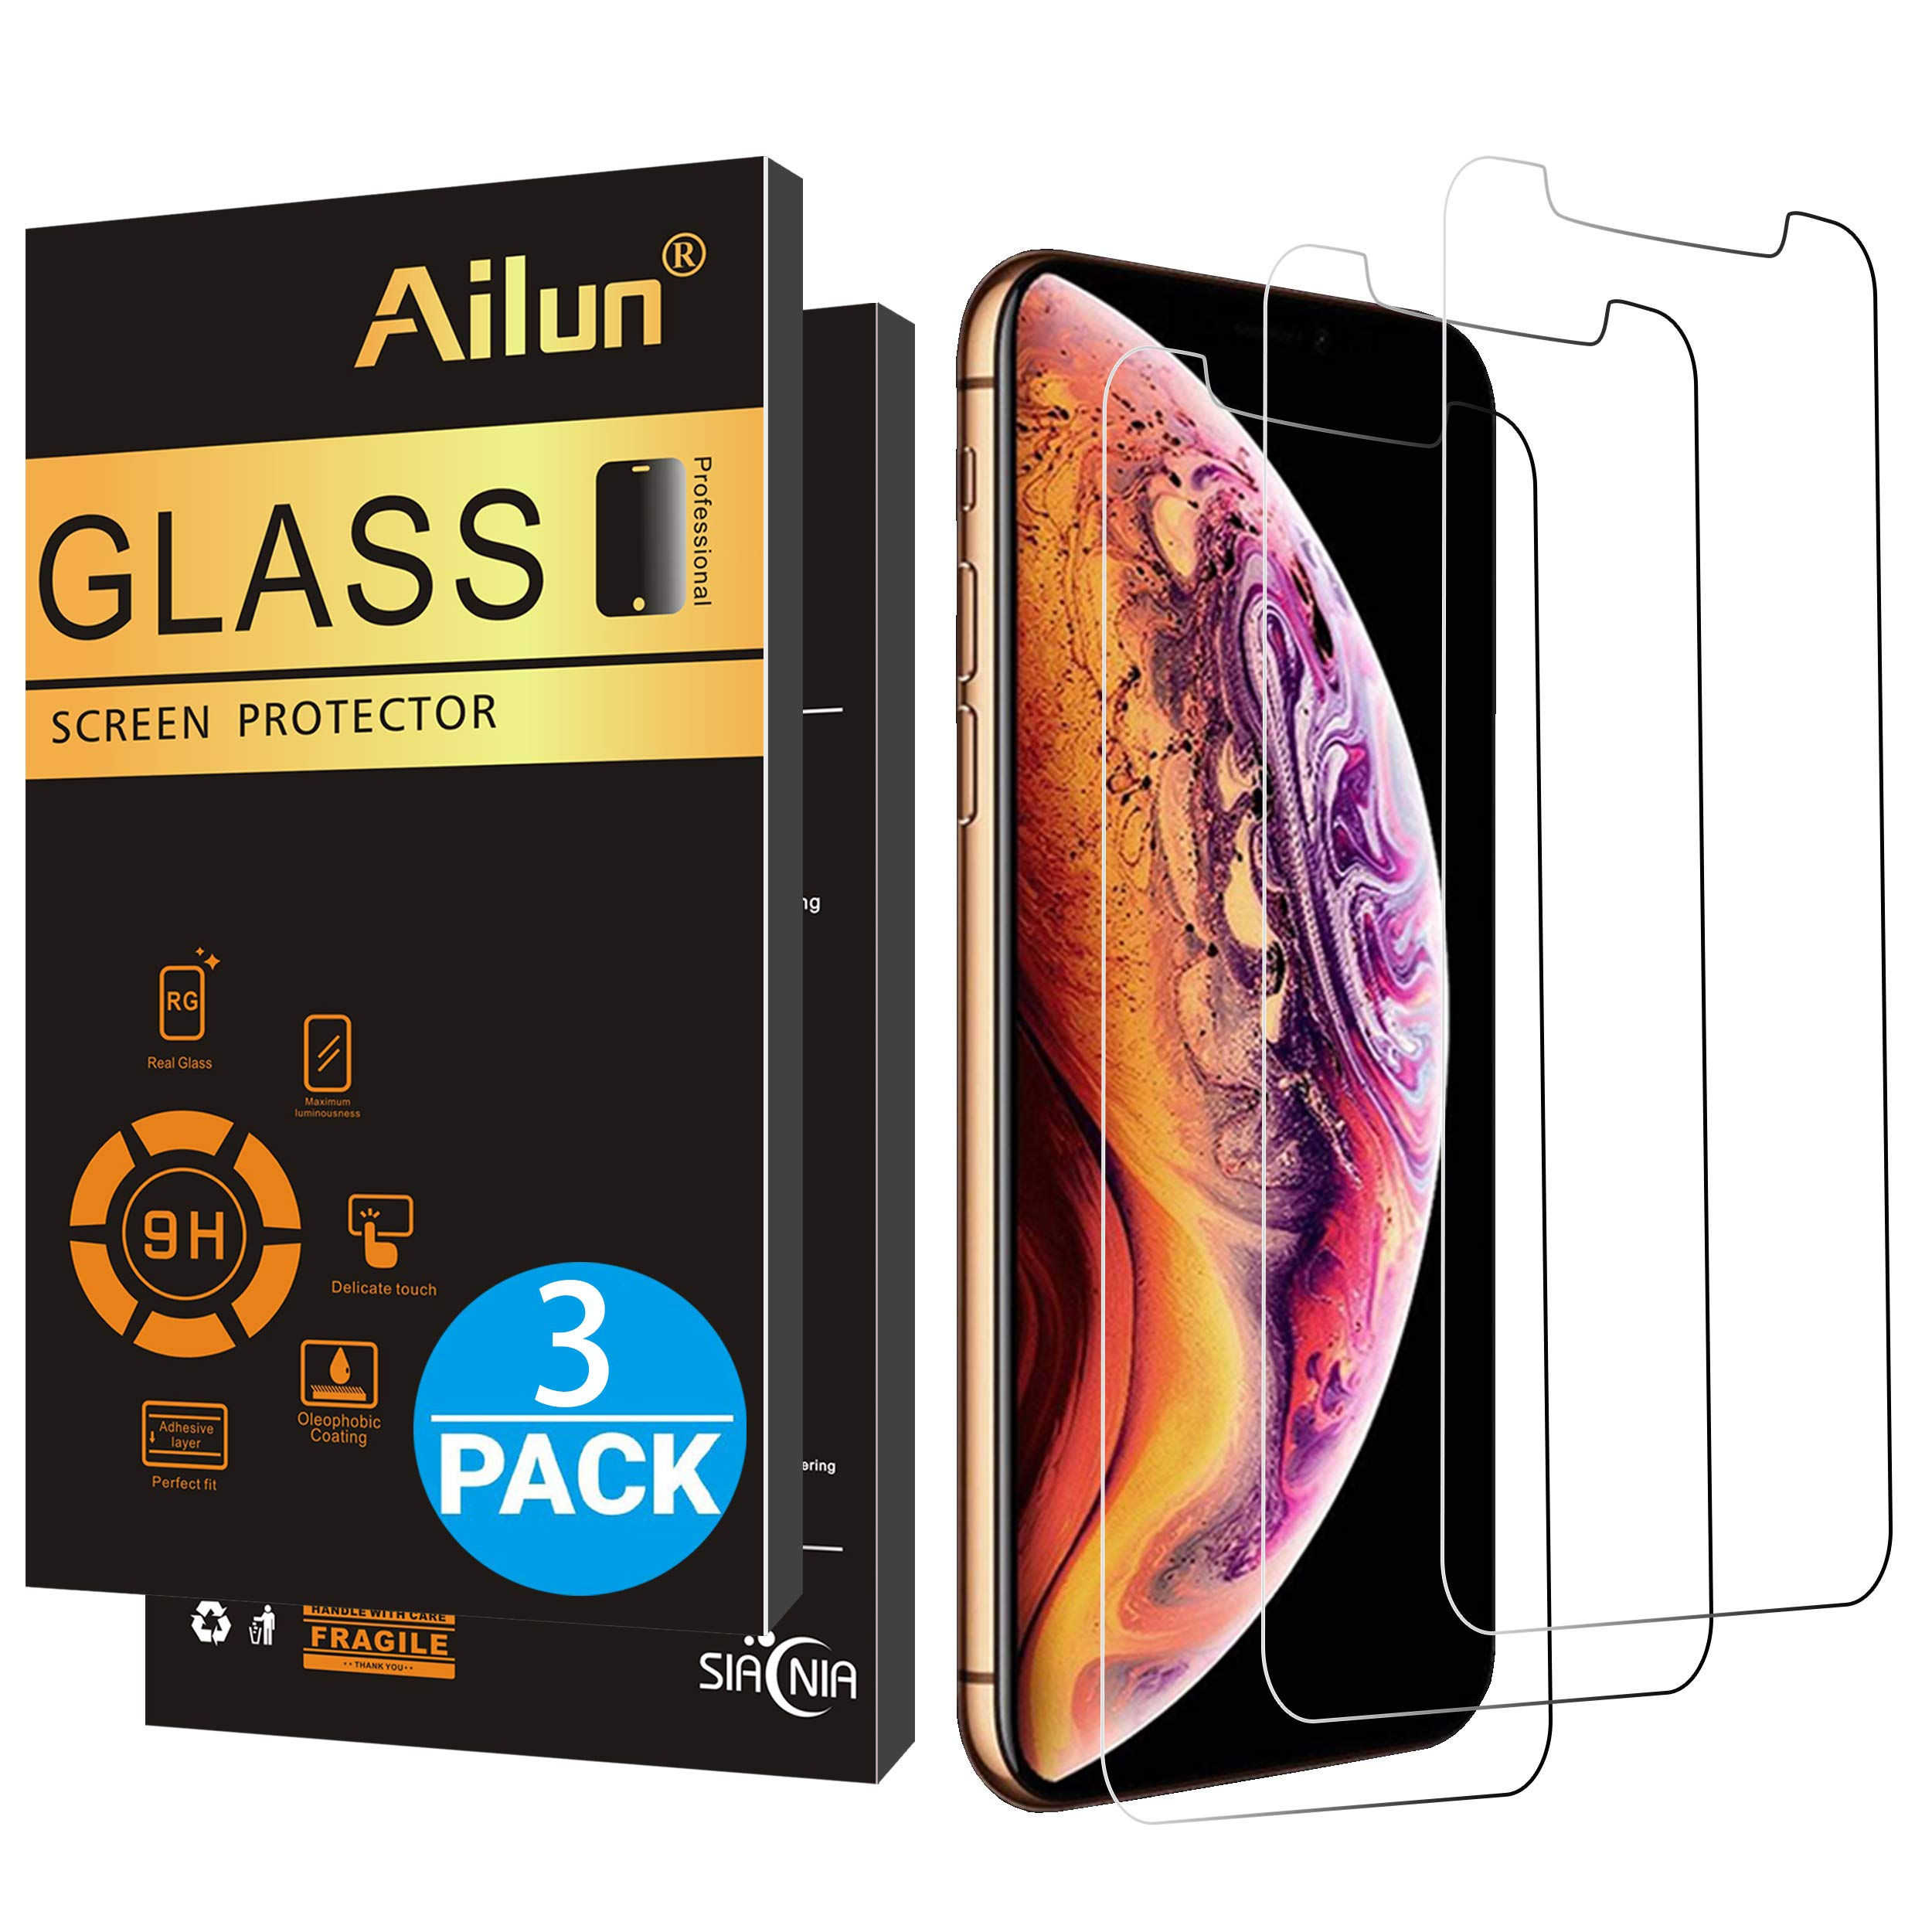 AILUN Compatible with Apple iPhone Xs Max Screen Protector[3 Pack](6.5 inch 2018 Release) Tempered Glass 0.33mm Anti-Scratch,Advanced HD Clarity Work with Most Case by AILUN (Image #1)